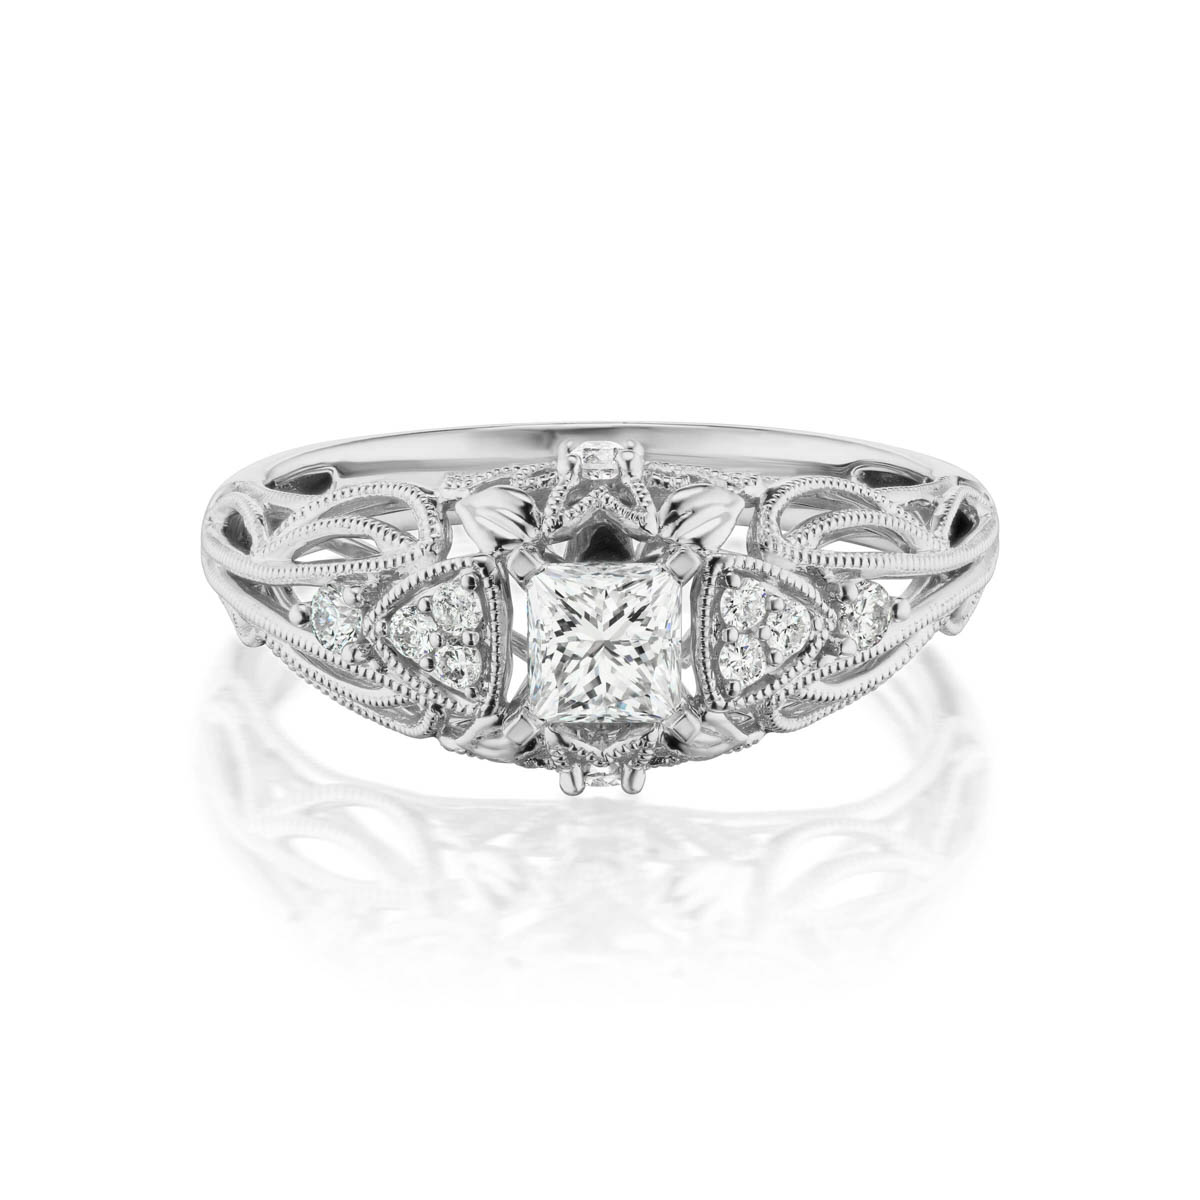 Blaze preset engagement diamond ring, 14KT White Gold